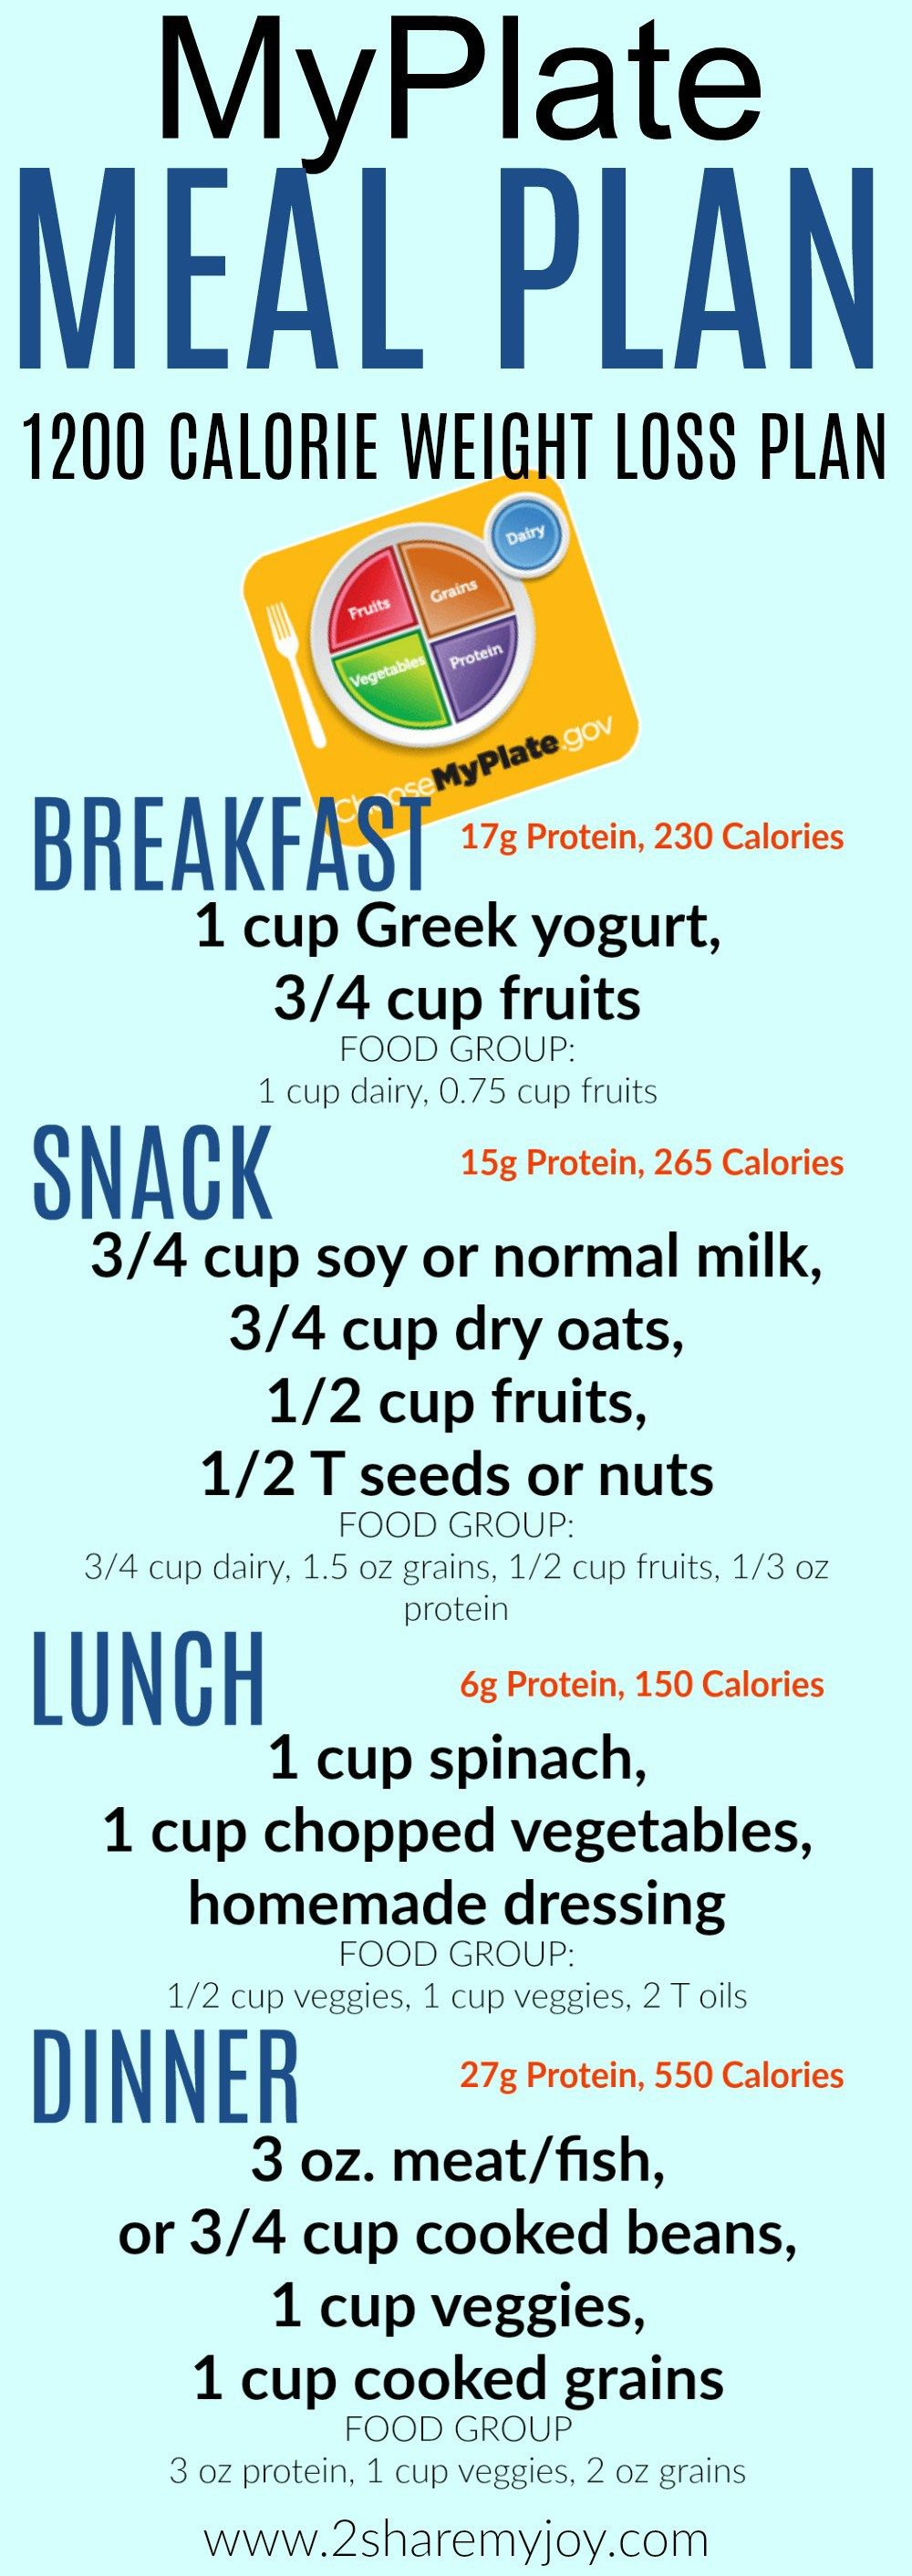 1200 calorie meal plan to lose weight fast on a balanced portion control  diet. CLean eating recipes for all food groups. #myplate